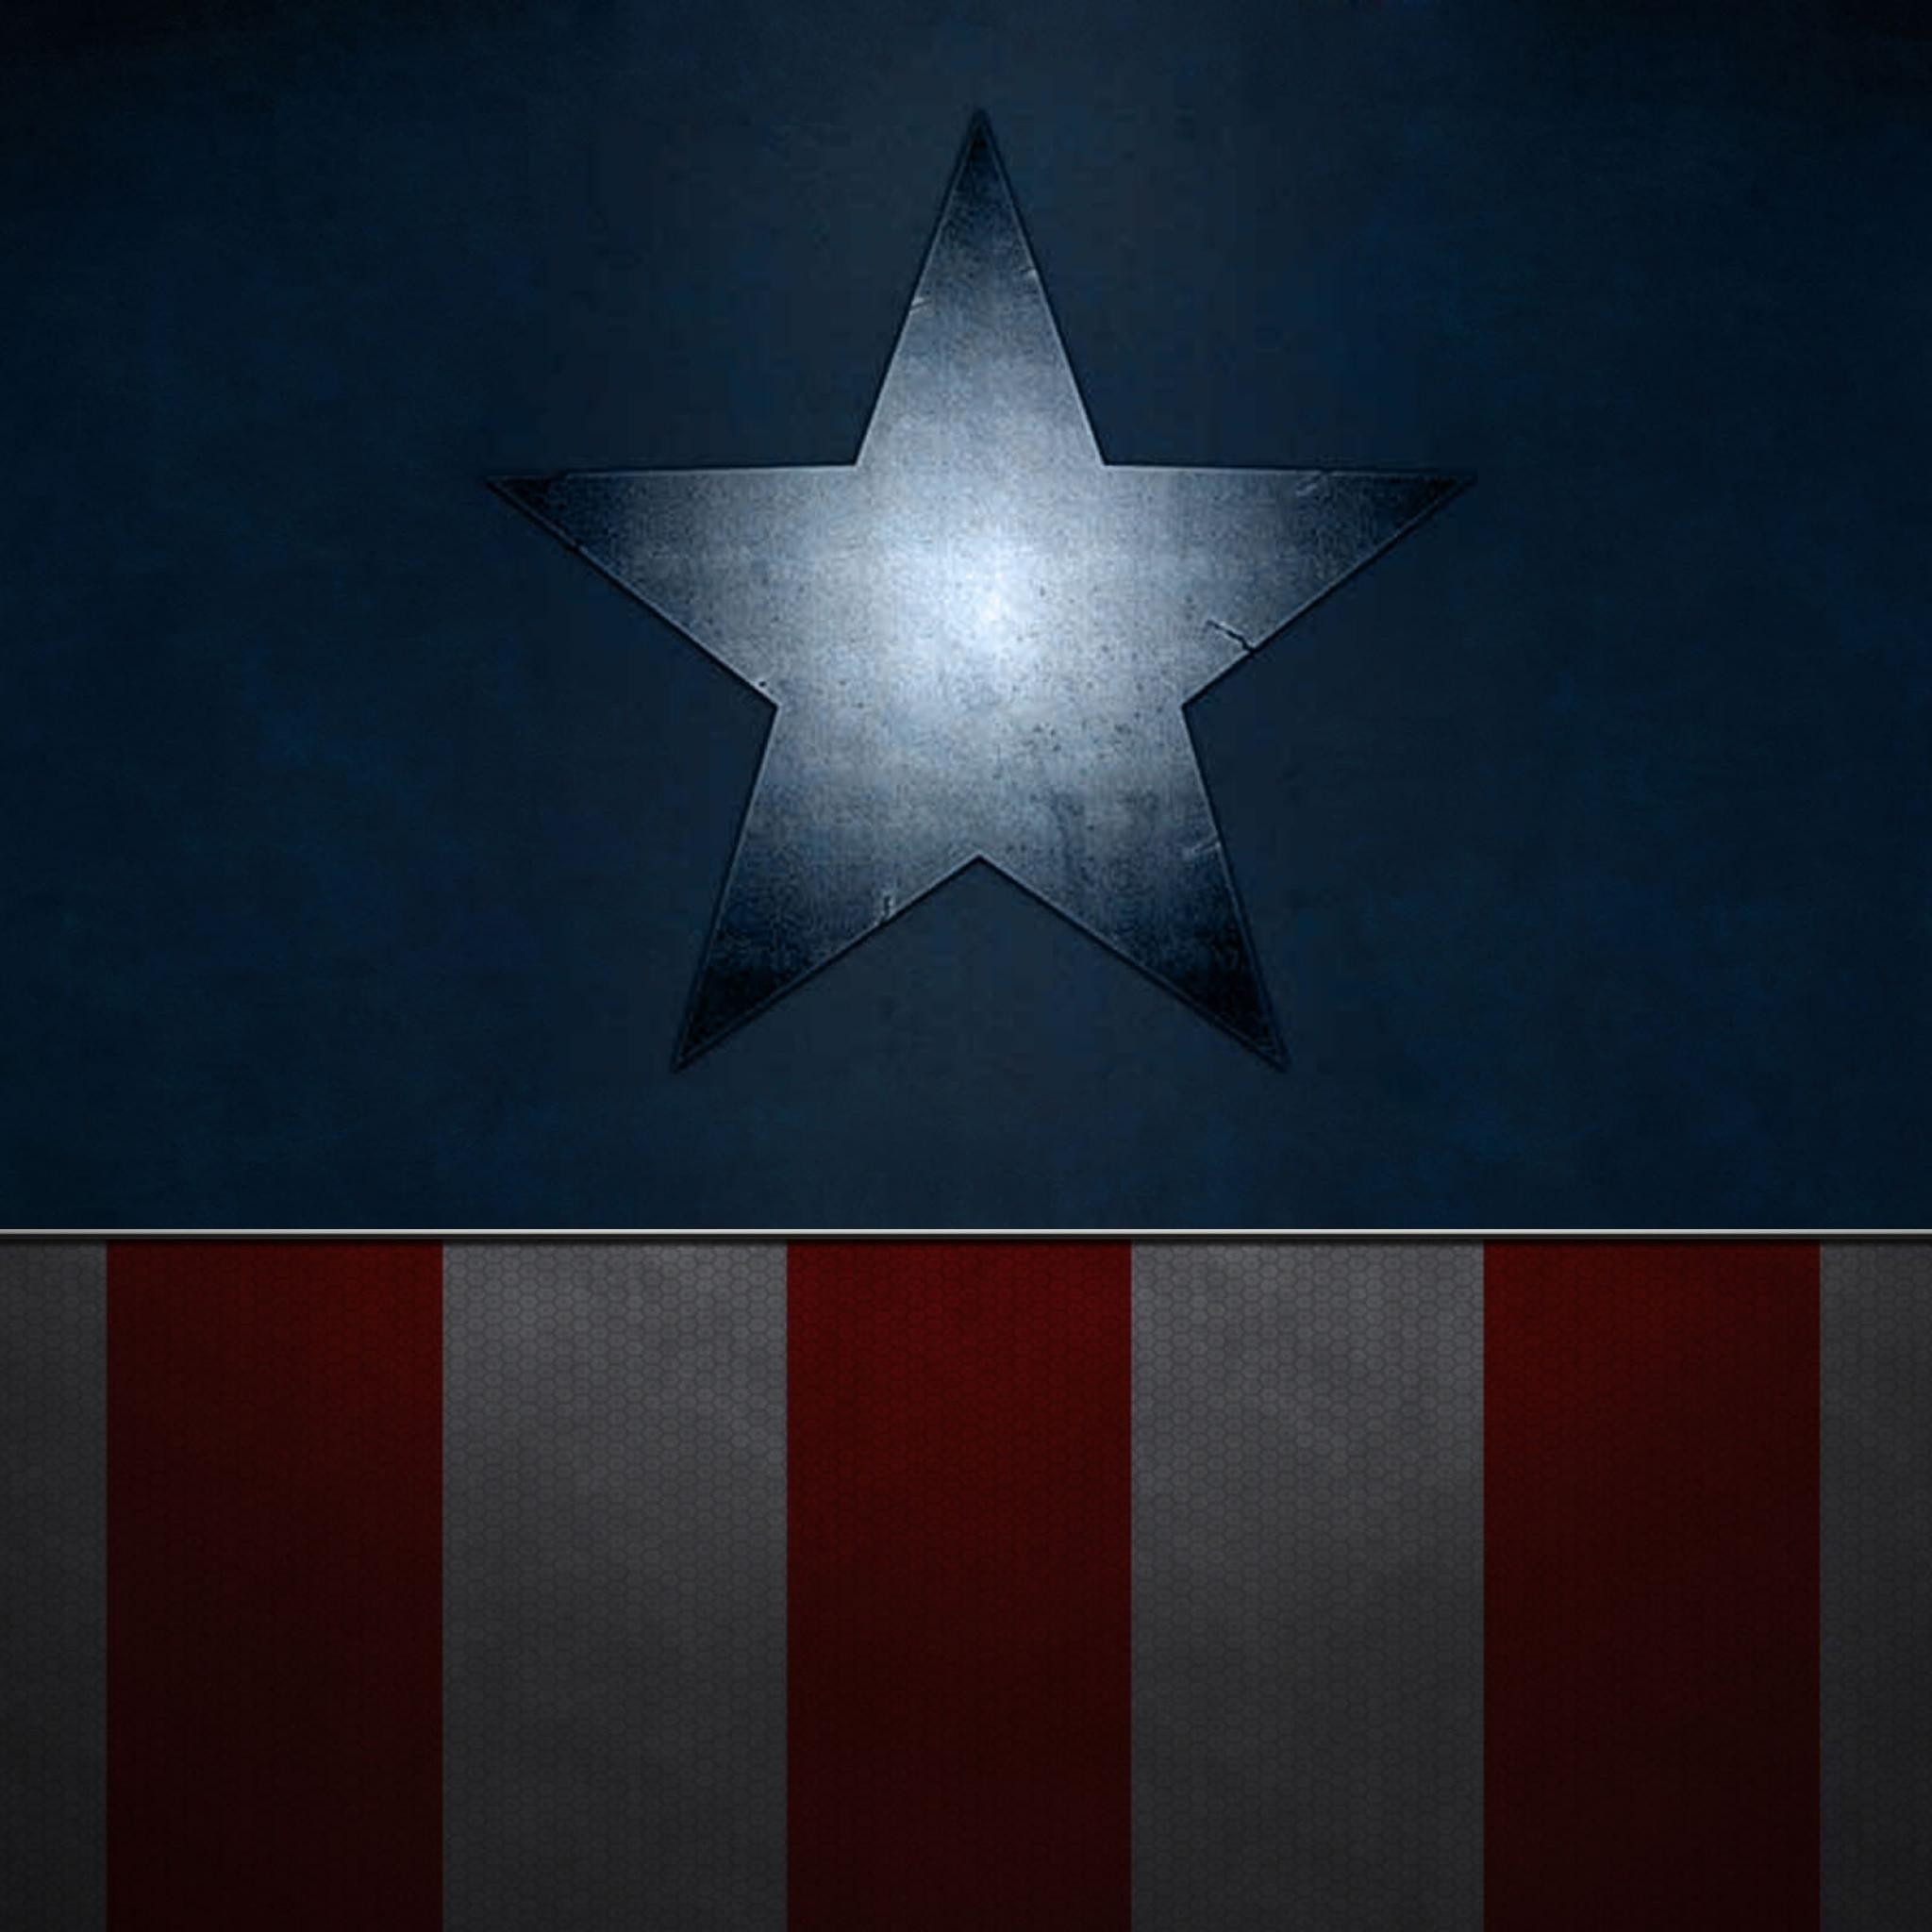 Captain america shield wallpaper hd 84 images - Superhero iphone wallpaper hd ...